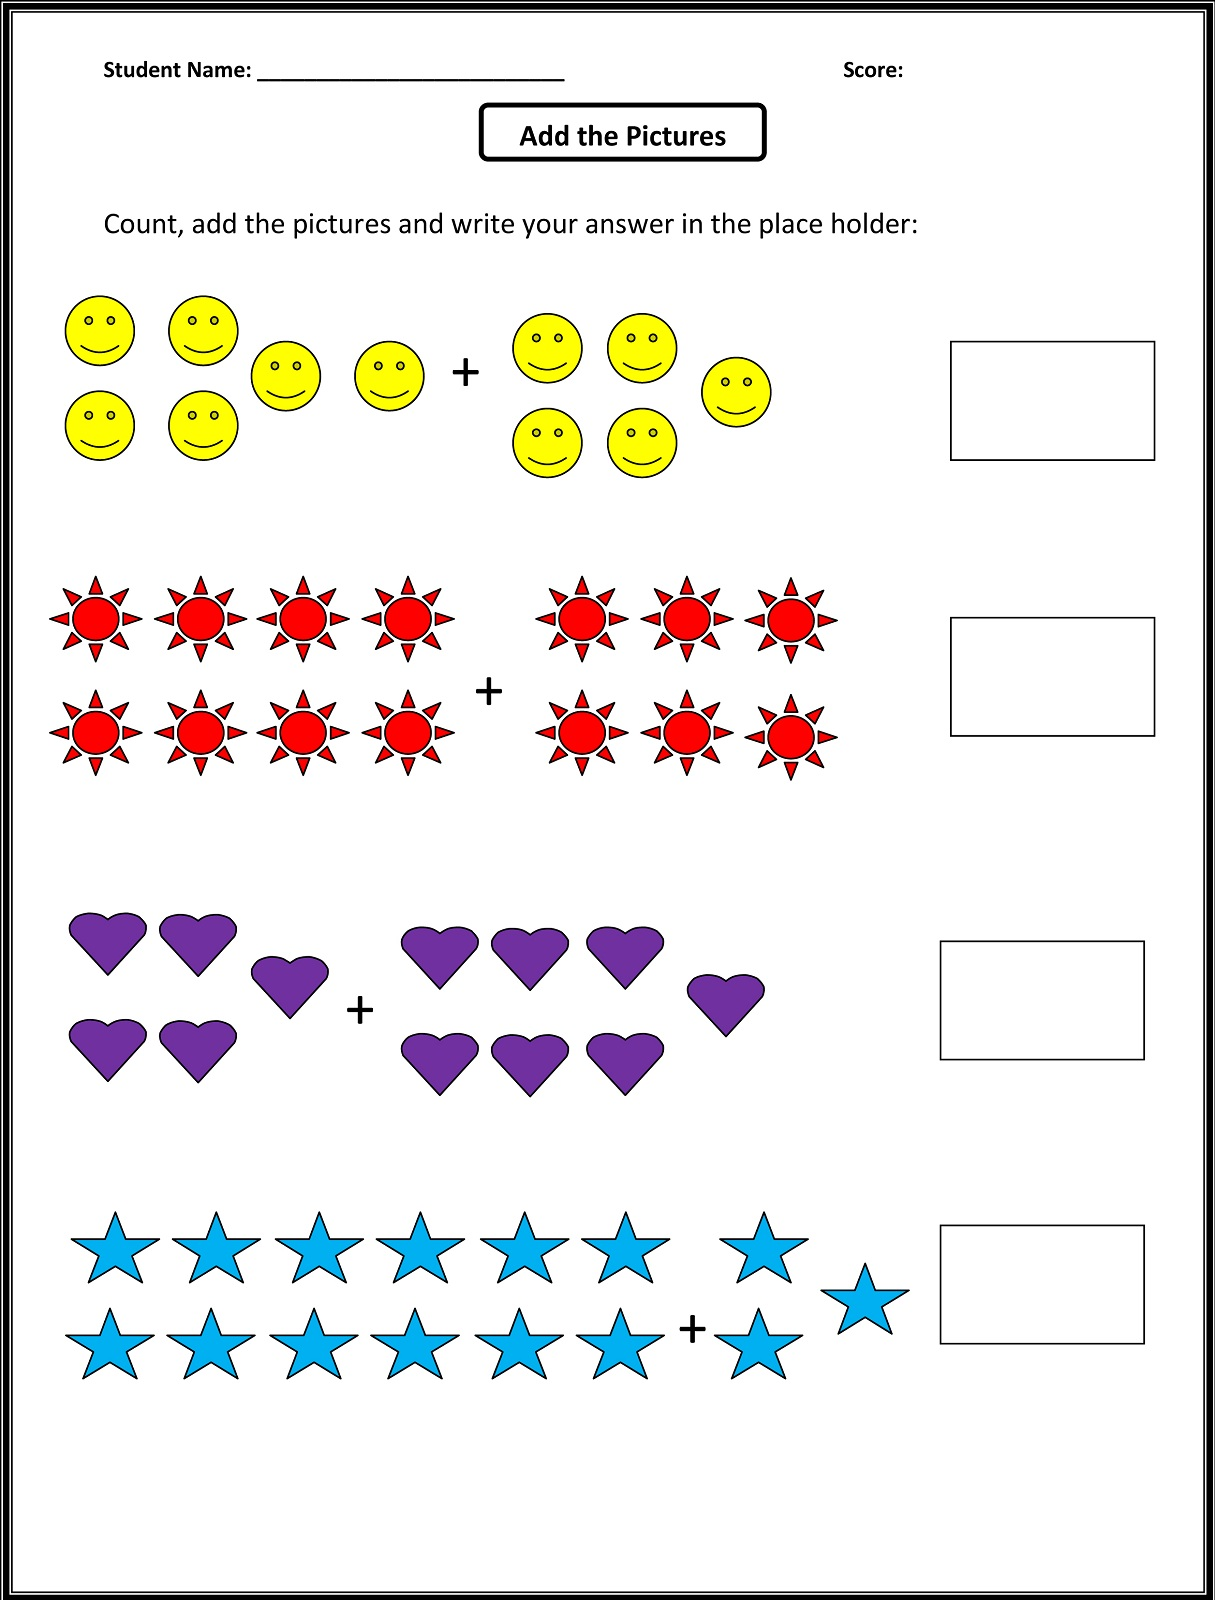 free math worksheets 1st grade – Fun Addition Worksheets for 1st Grade